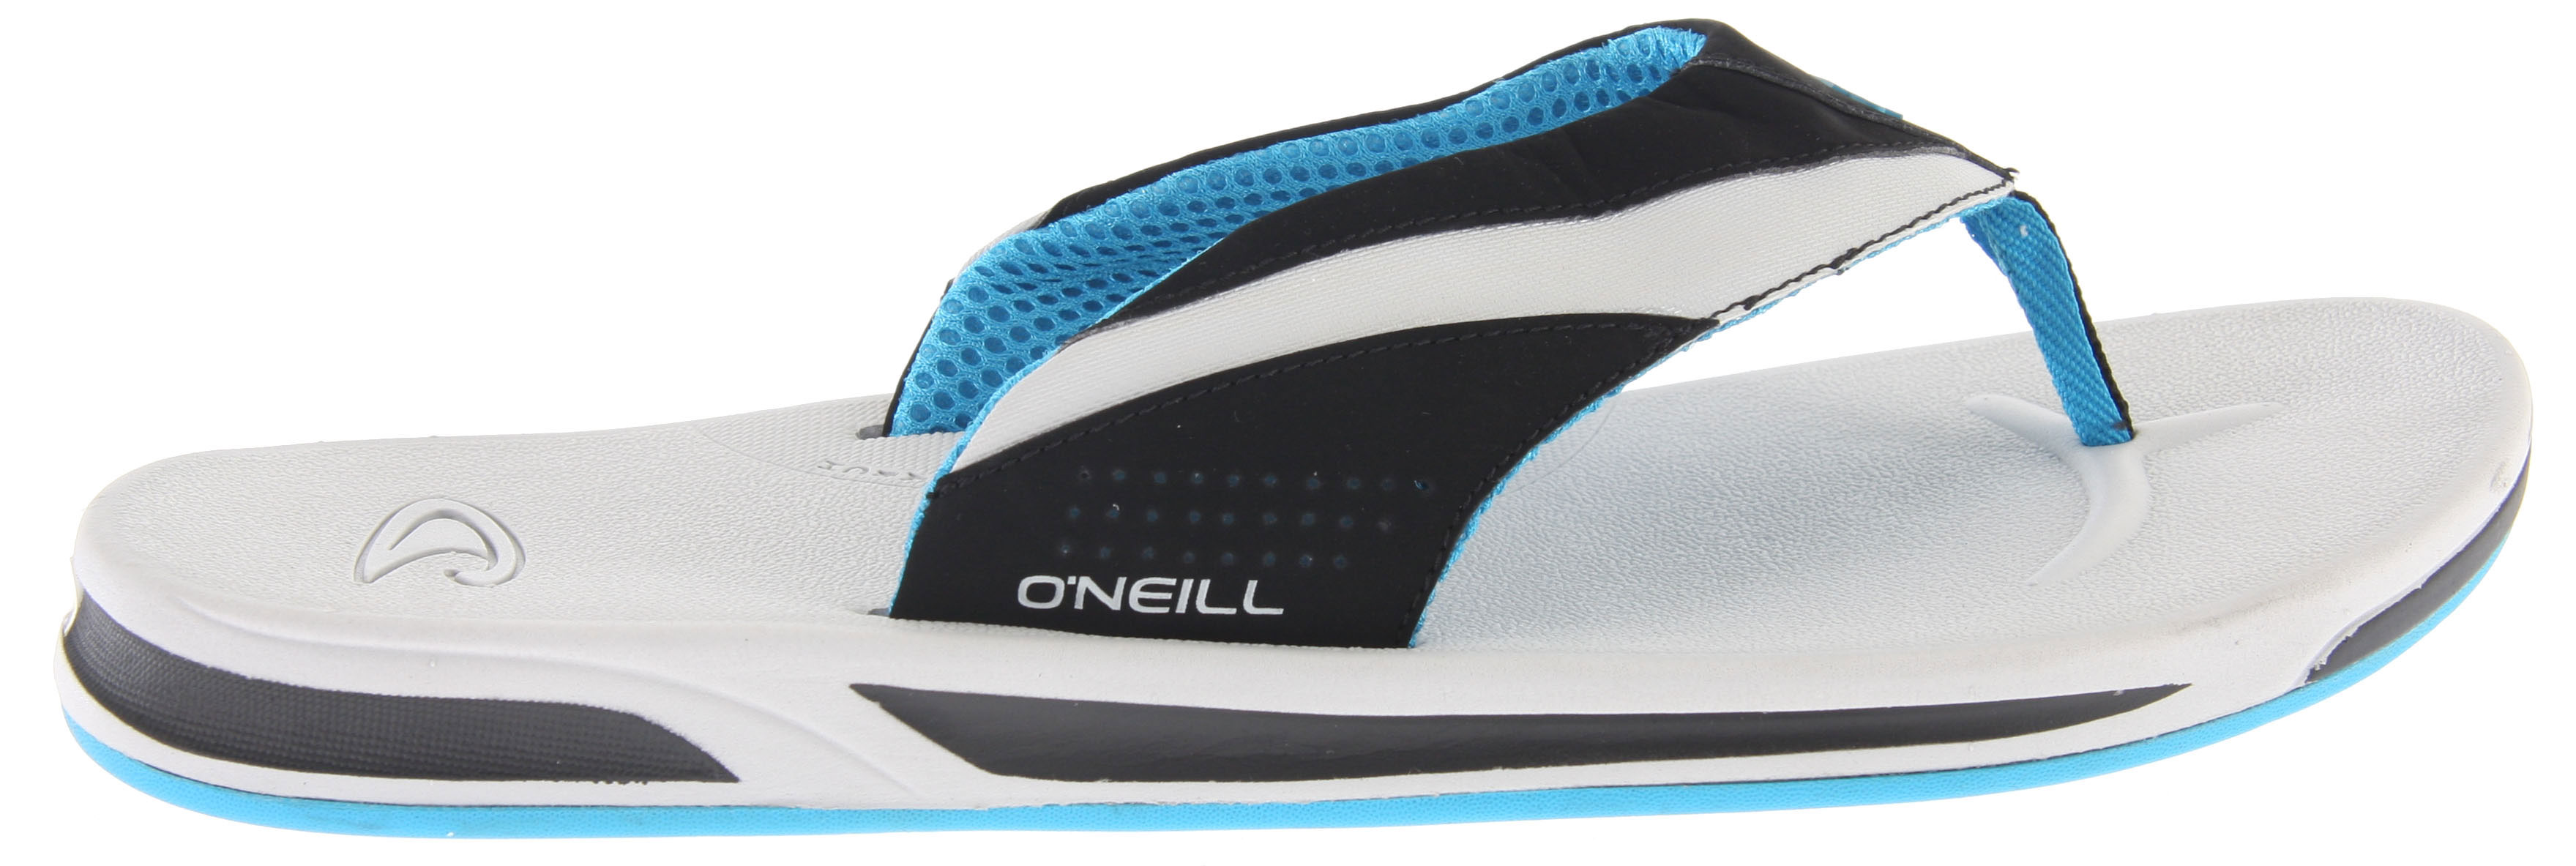 Surf Key Features of the O'Neill Killers Sandals: Synthetic nubuck upper Comfort airmesh lining Debossed logo graphics Contoured compression molded EVA footbed Super arch support Rubber outsole - $31.95